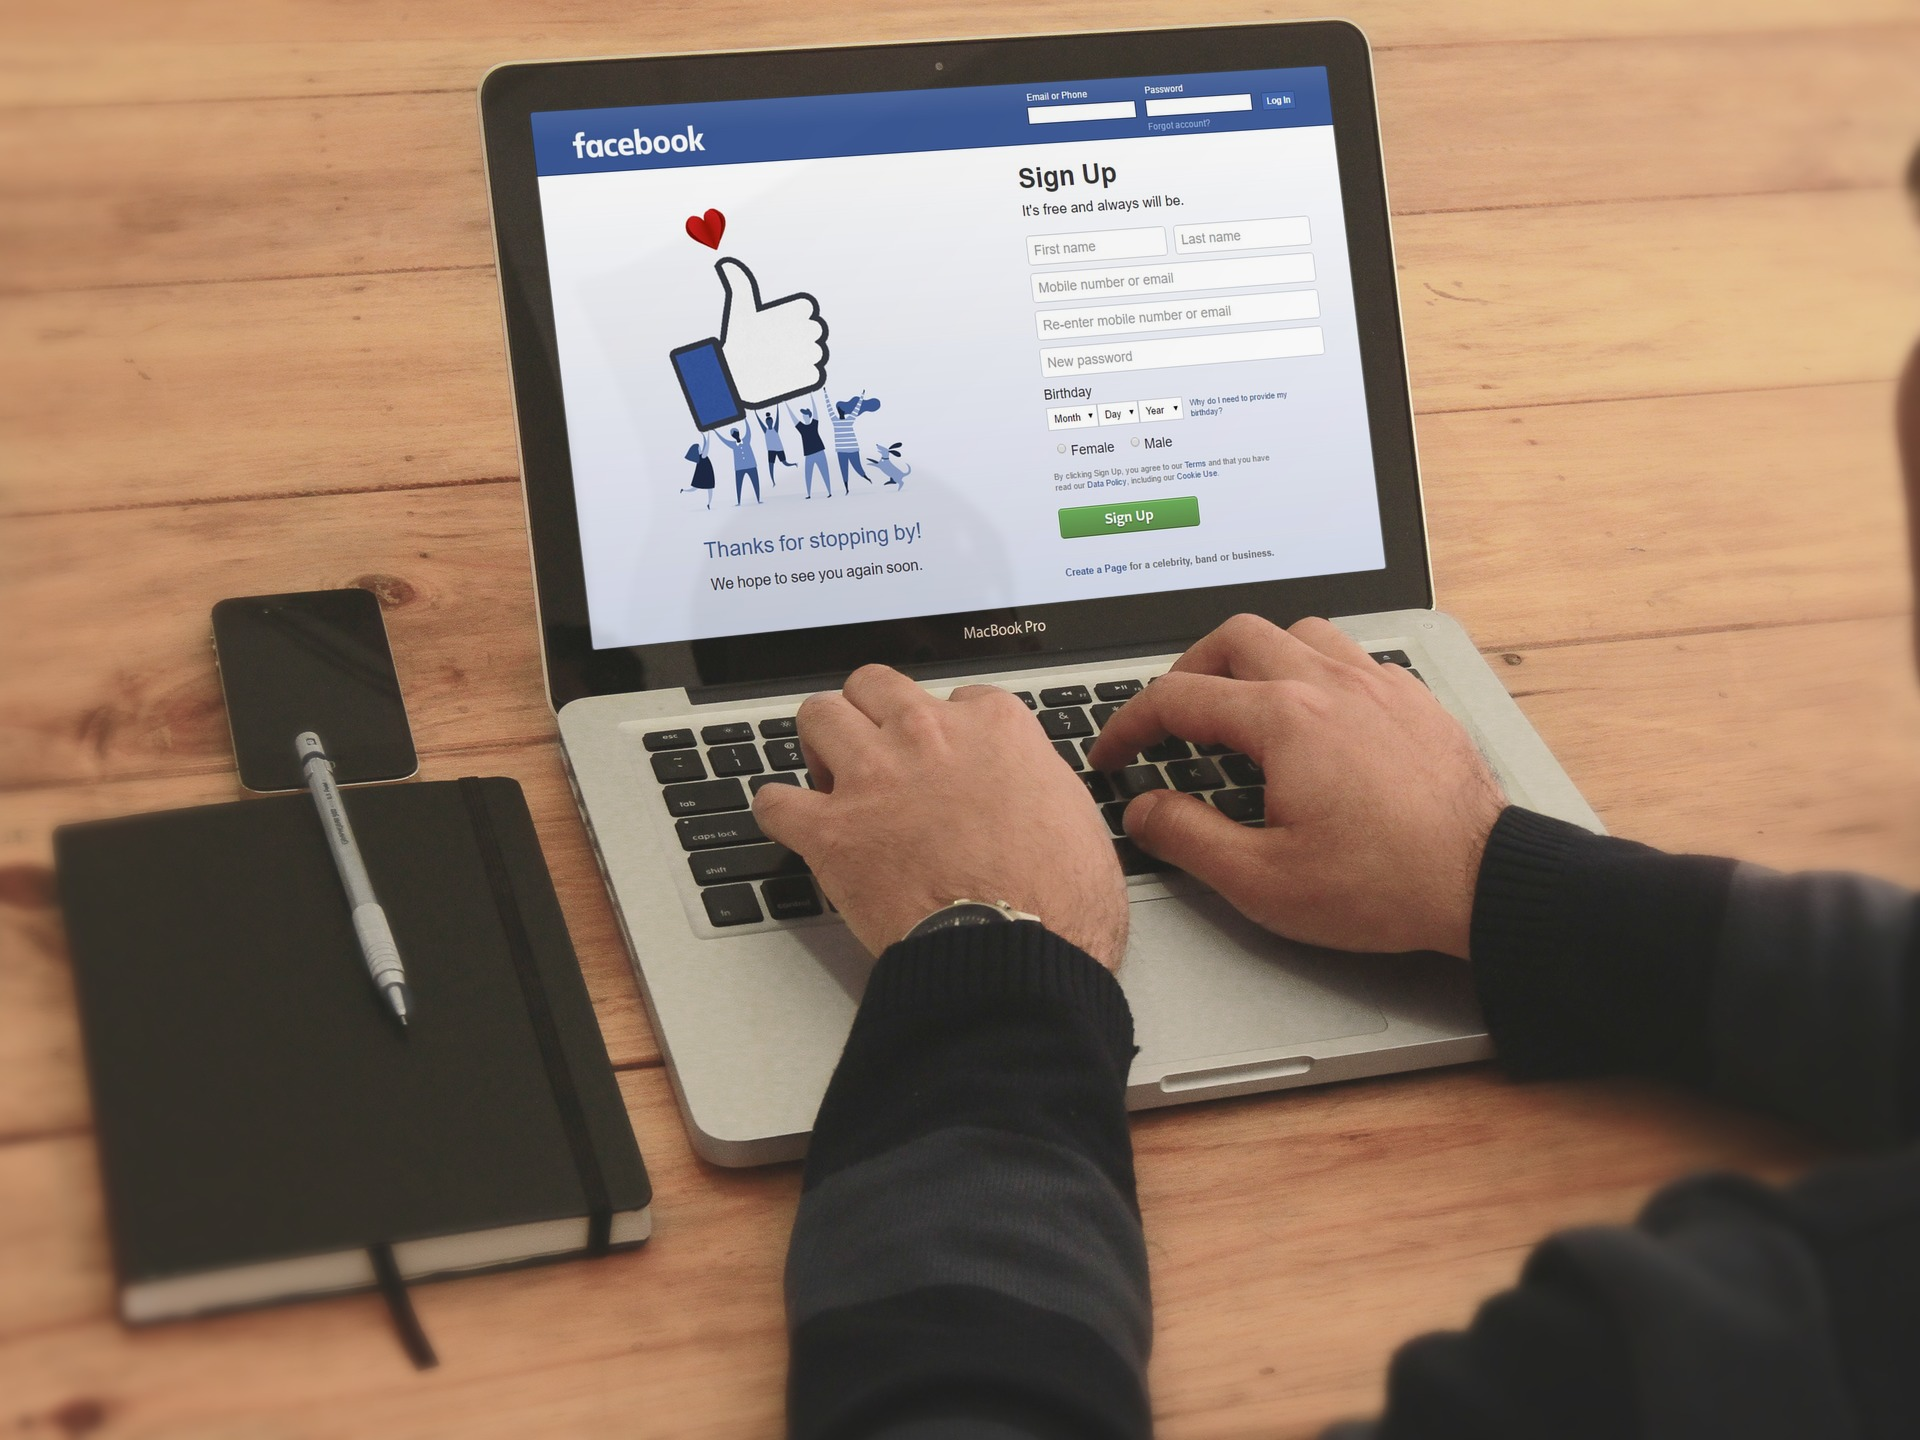 Facebook Marketing in 2016: How to Optimize it for Your Business [Infographic]